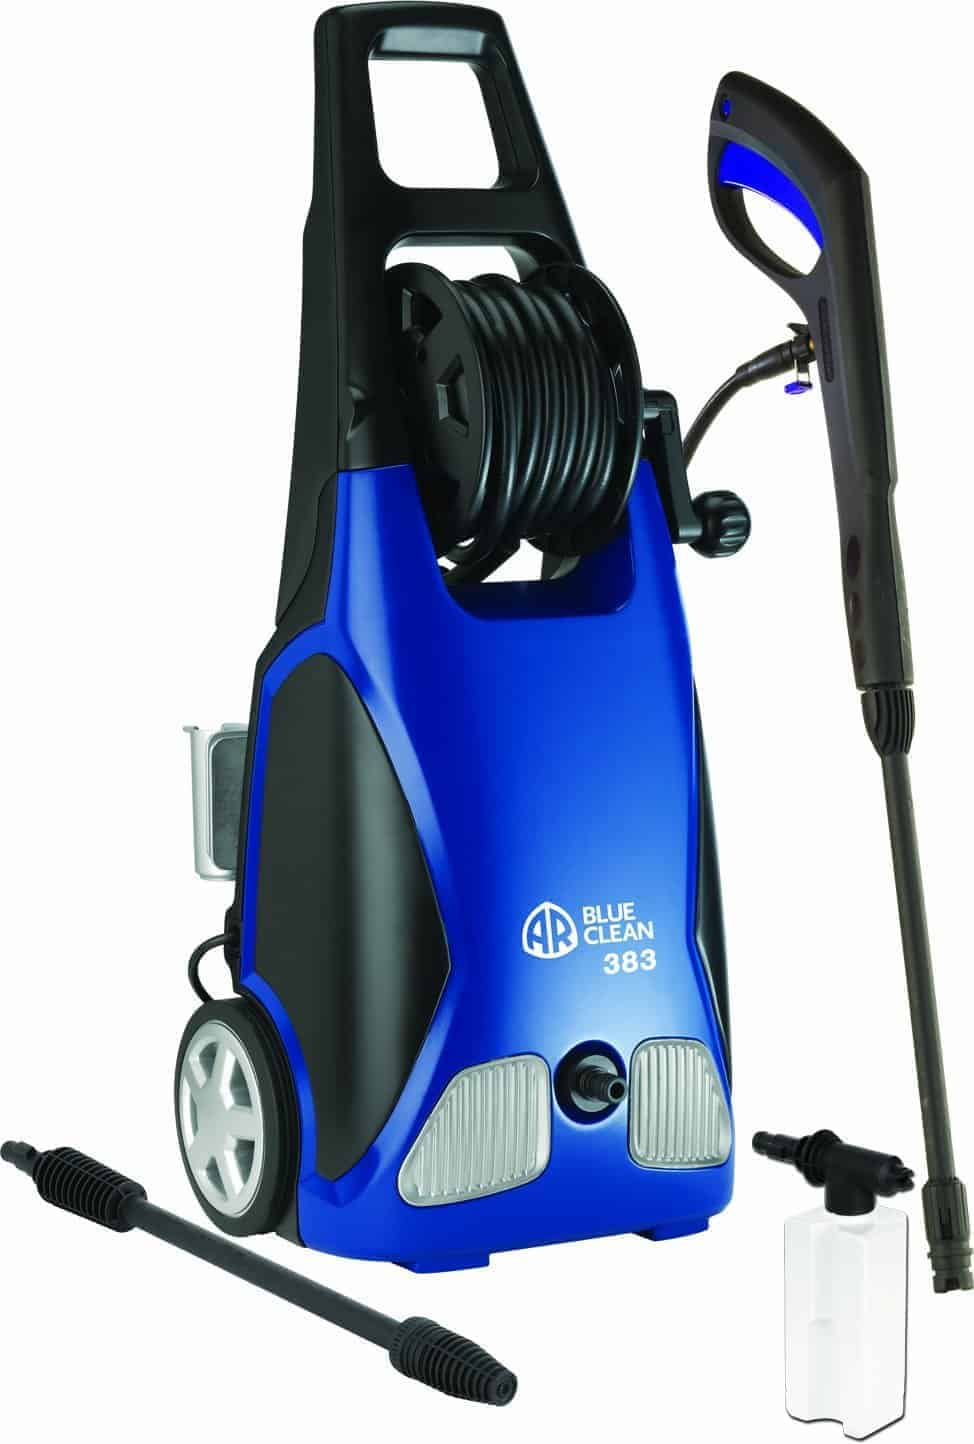 AR Blue Clean AR383 Pressure Washer Review